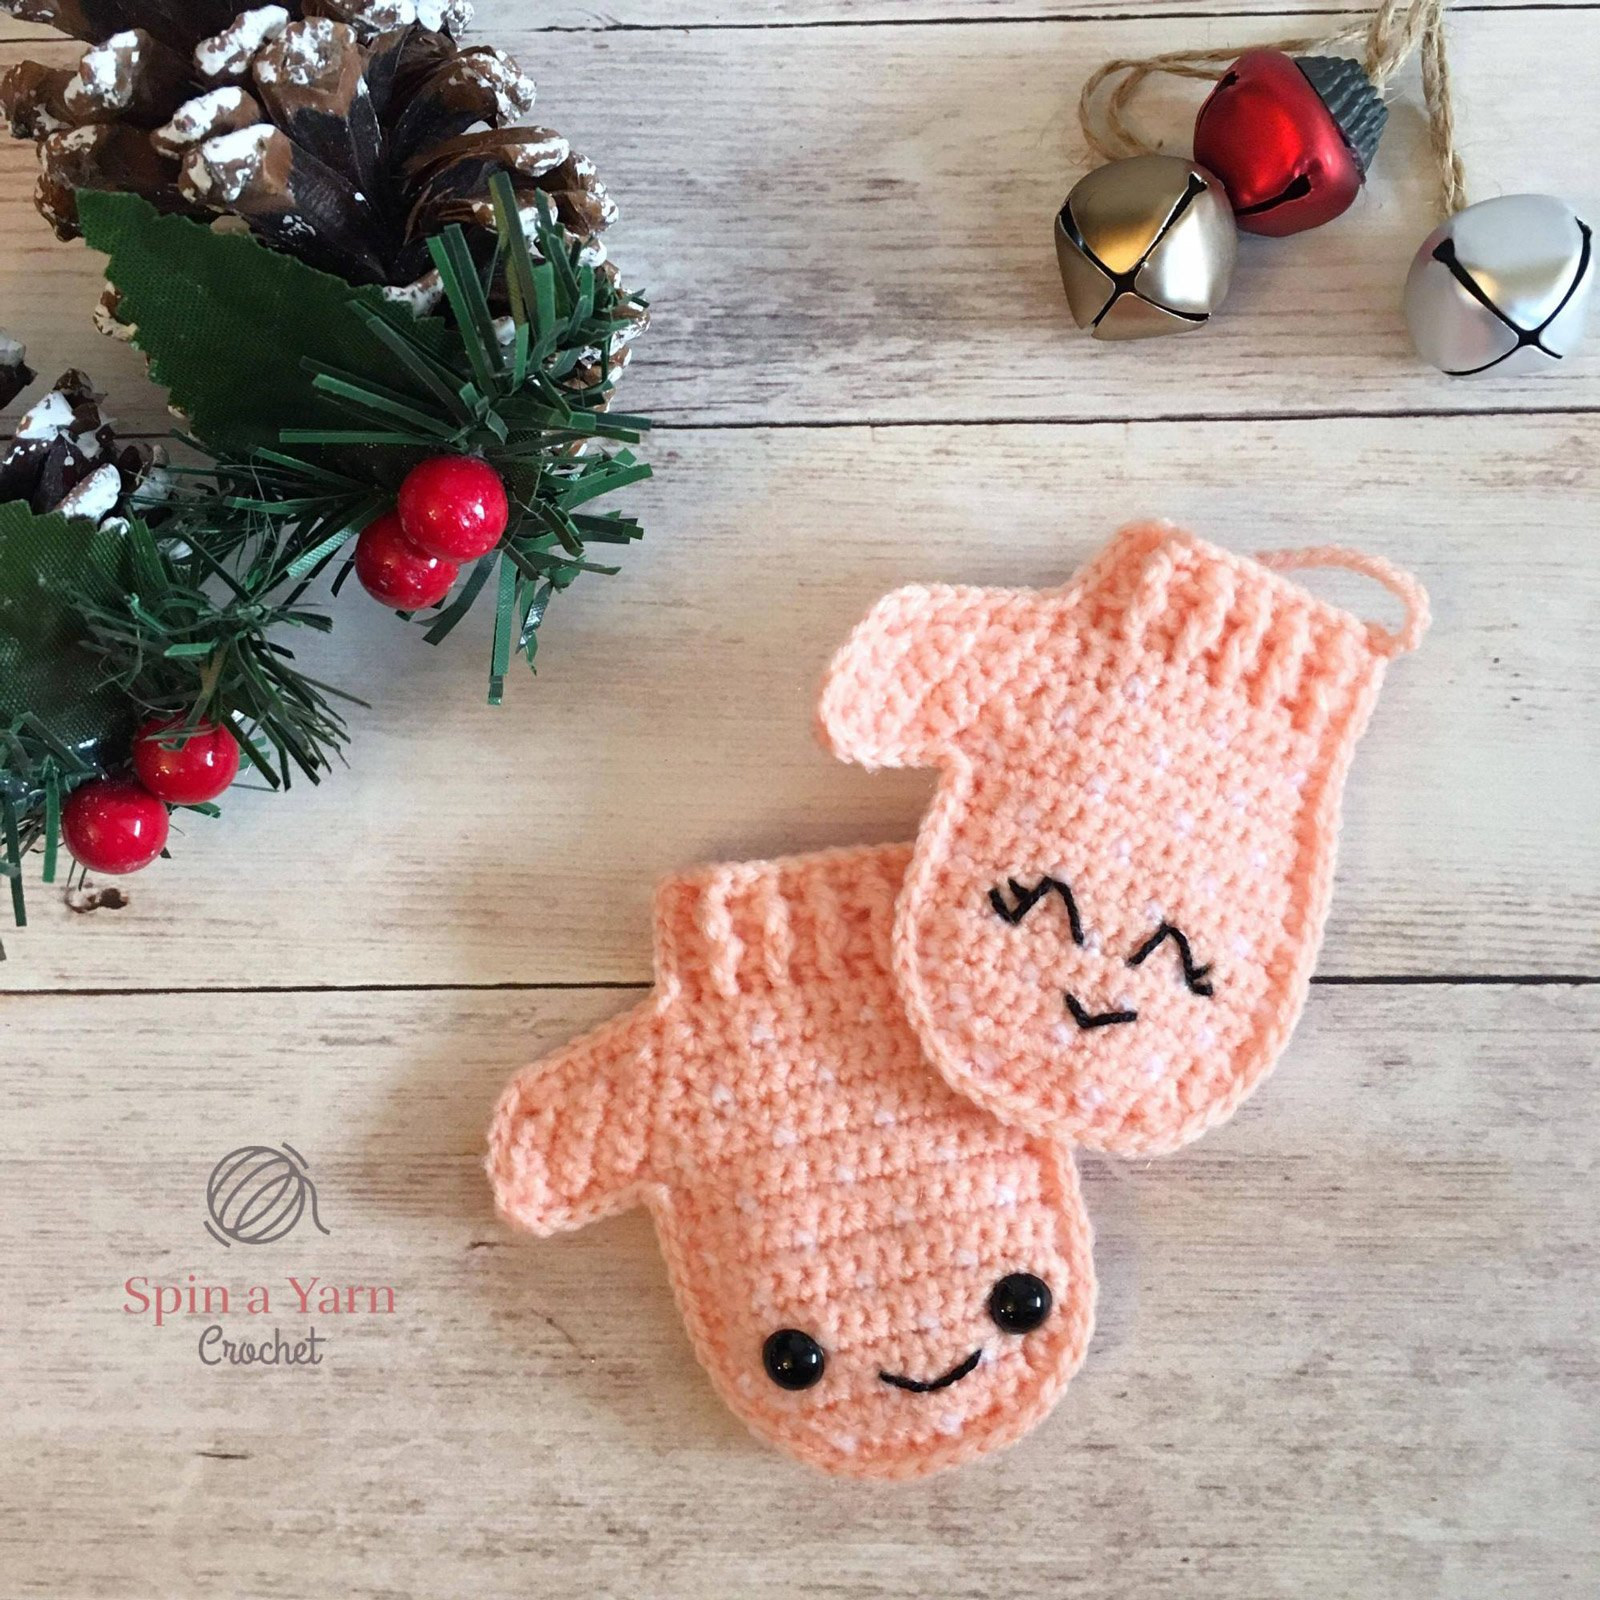 a pair of crochet mittens on a wooden backdrop